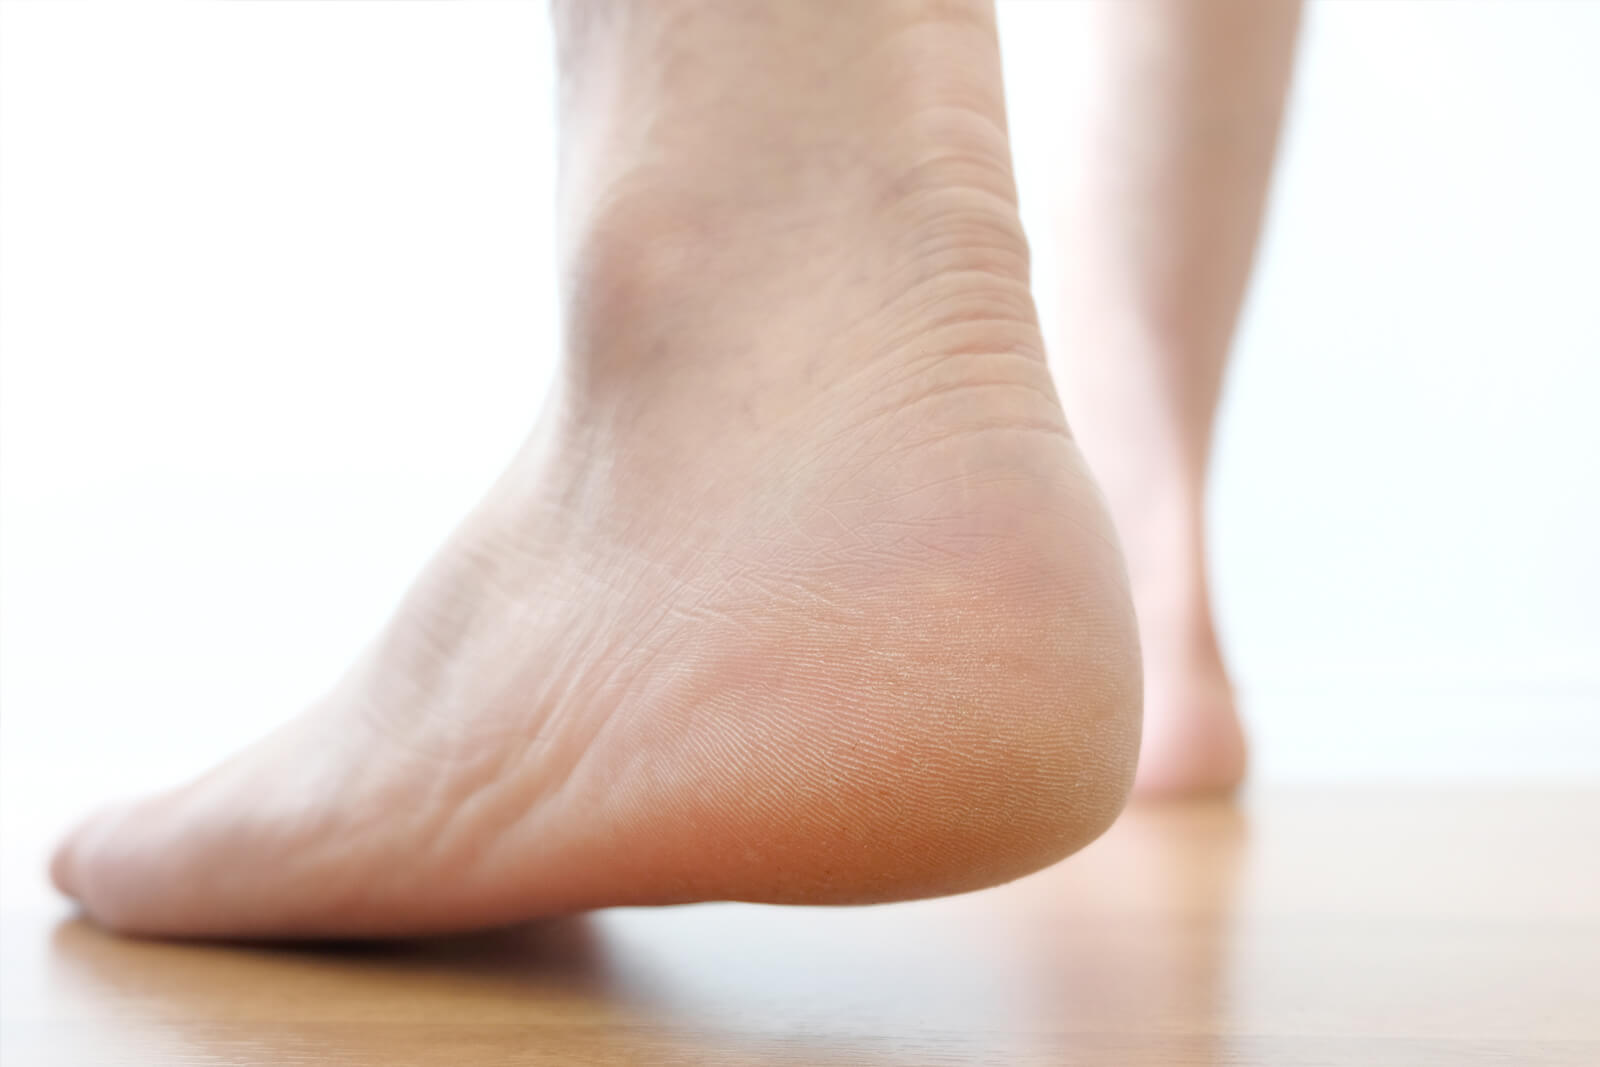 Walking can be difficult if you have heel pain from plantar fasciitis